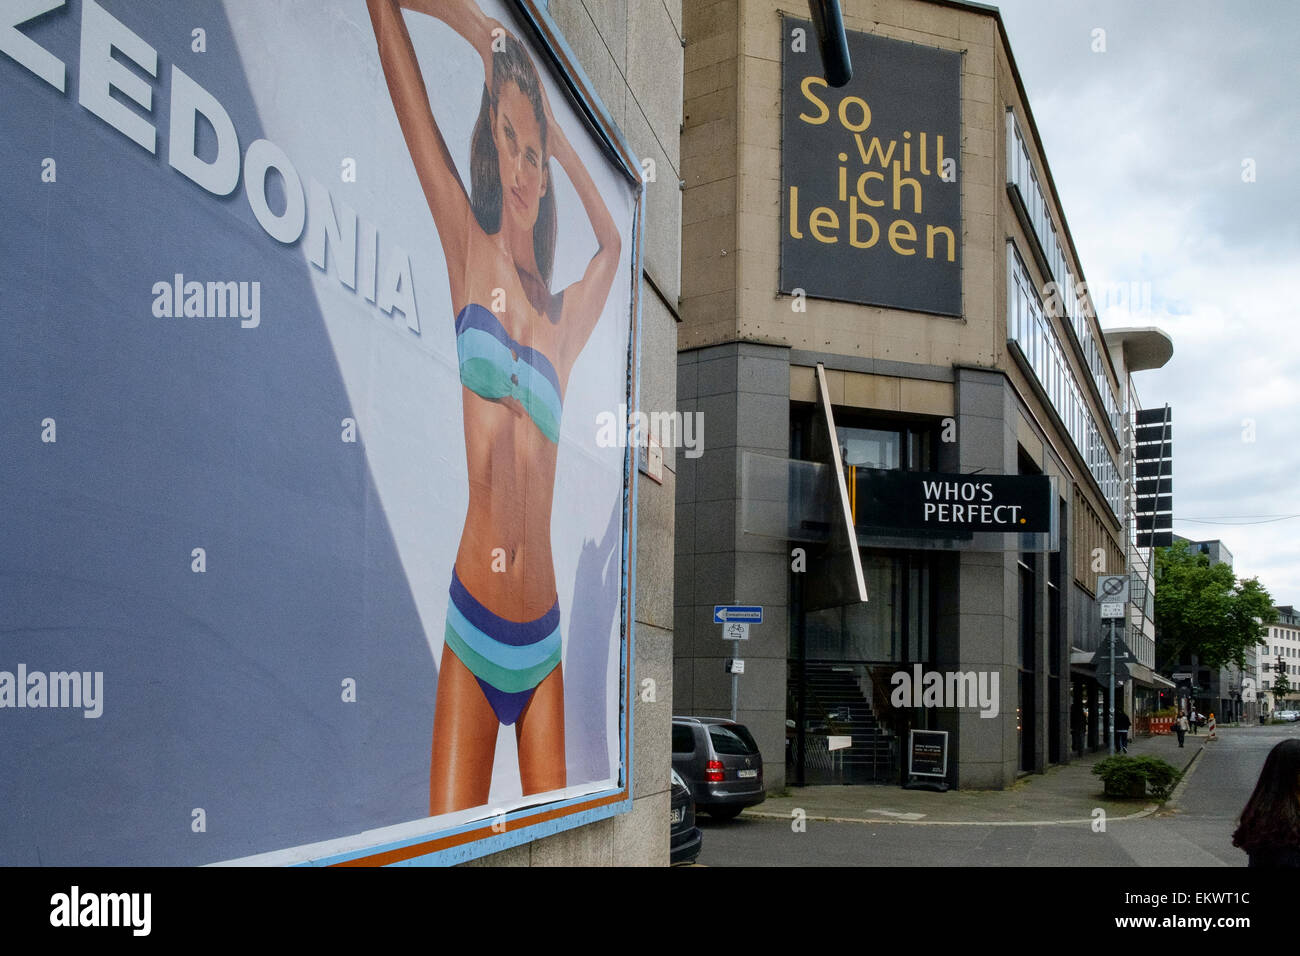 who's perfect so will ich leben zedonia germany - Stock Image